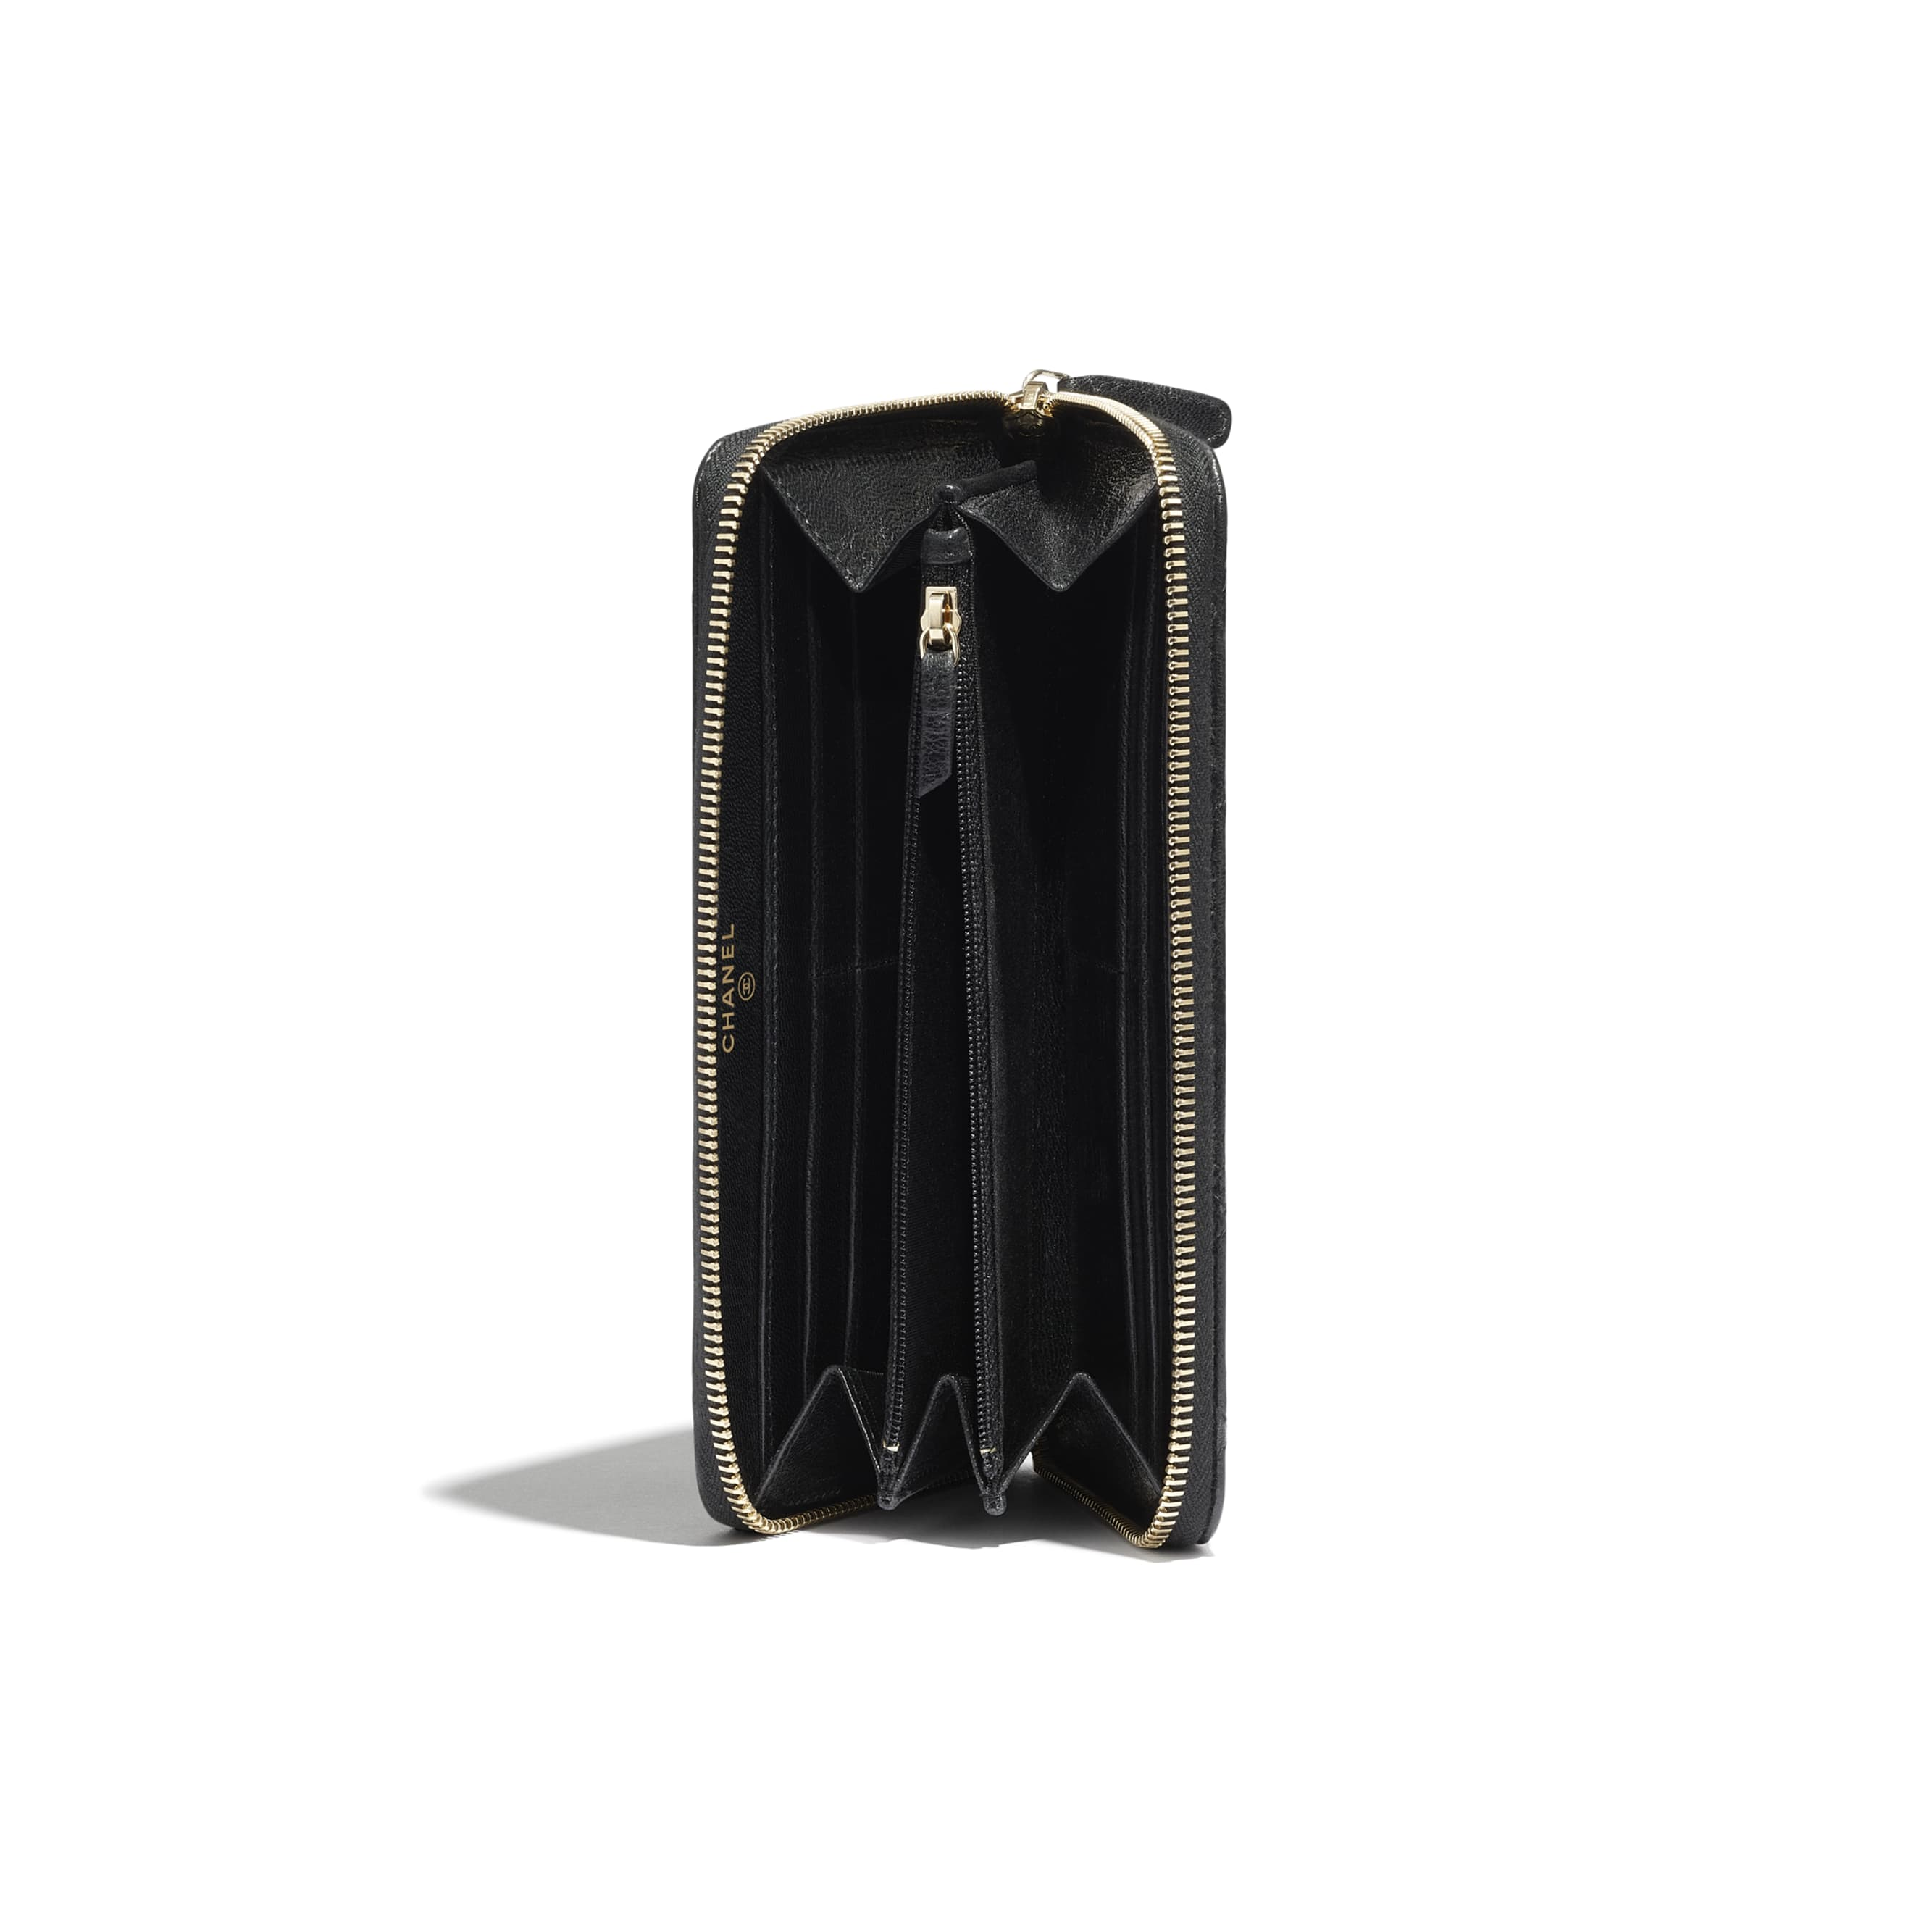 Long Zipped Wallet - Black - Shiny Crumpled Goatskin & Gold-Tone Metal - CHANEL - Extra view - see standard sized version